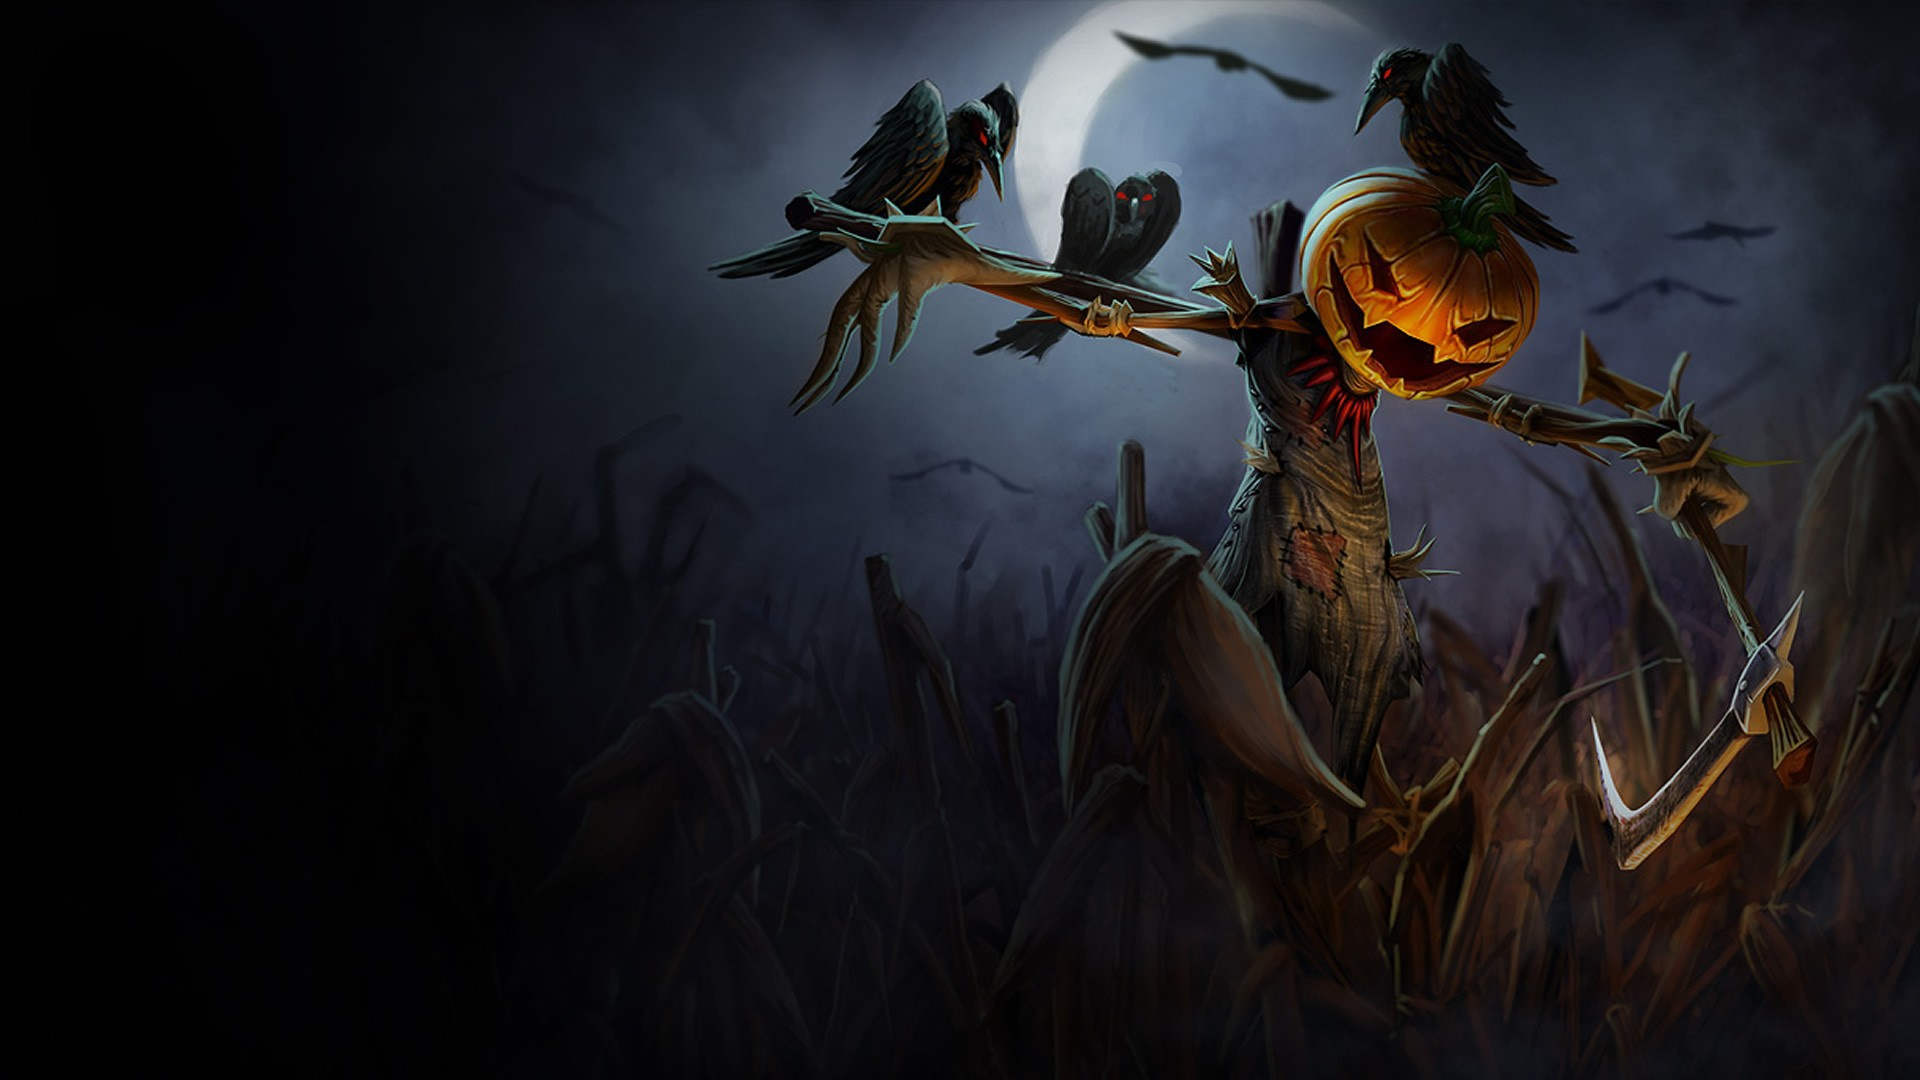 pumpkin, scarecrow, dark, spooky, night, moon